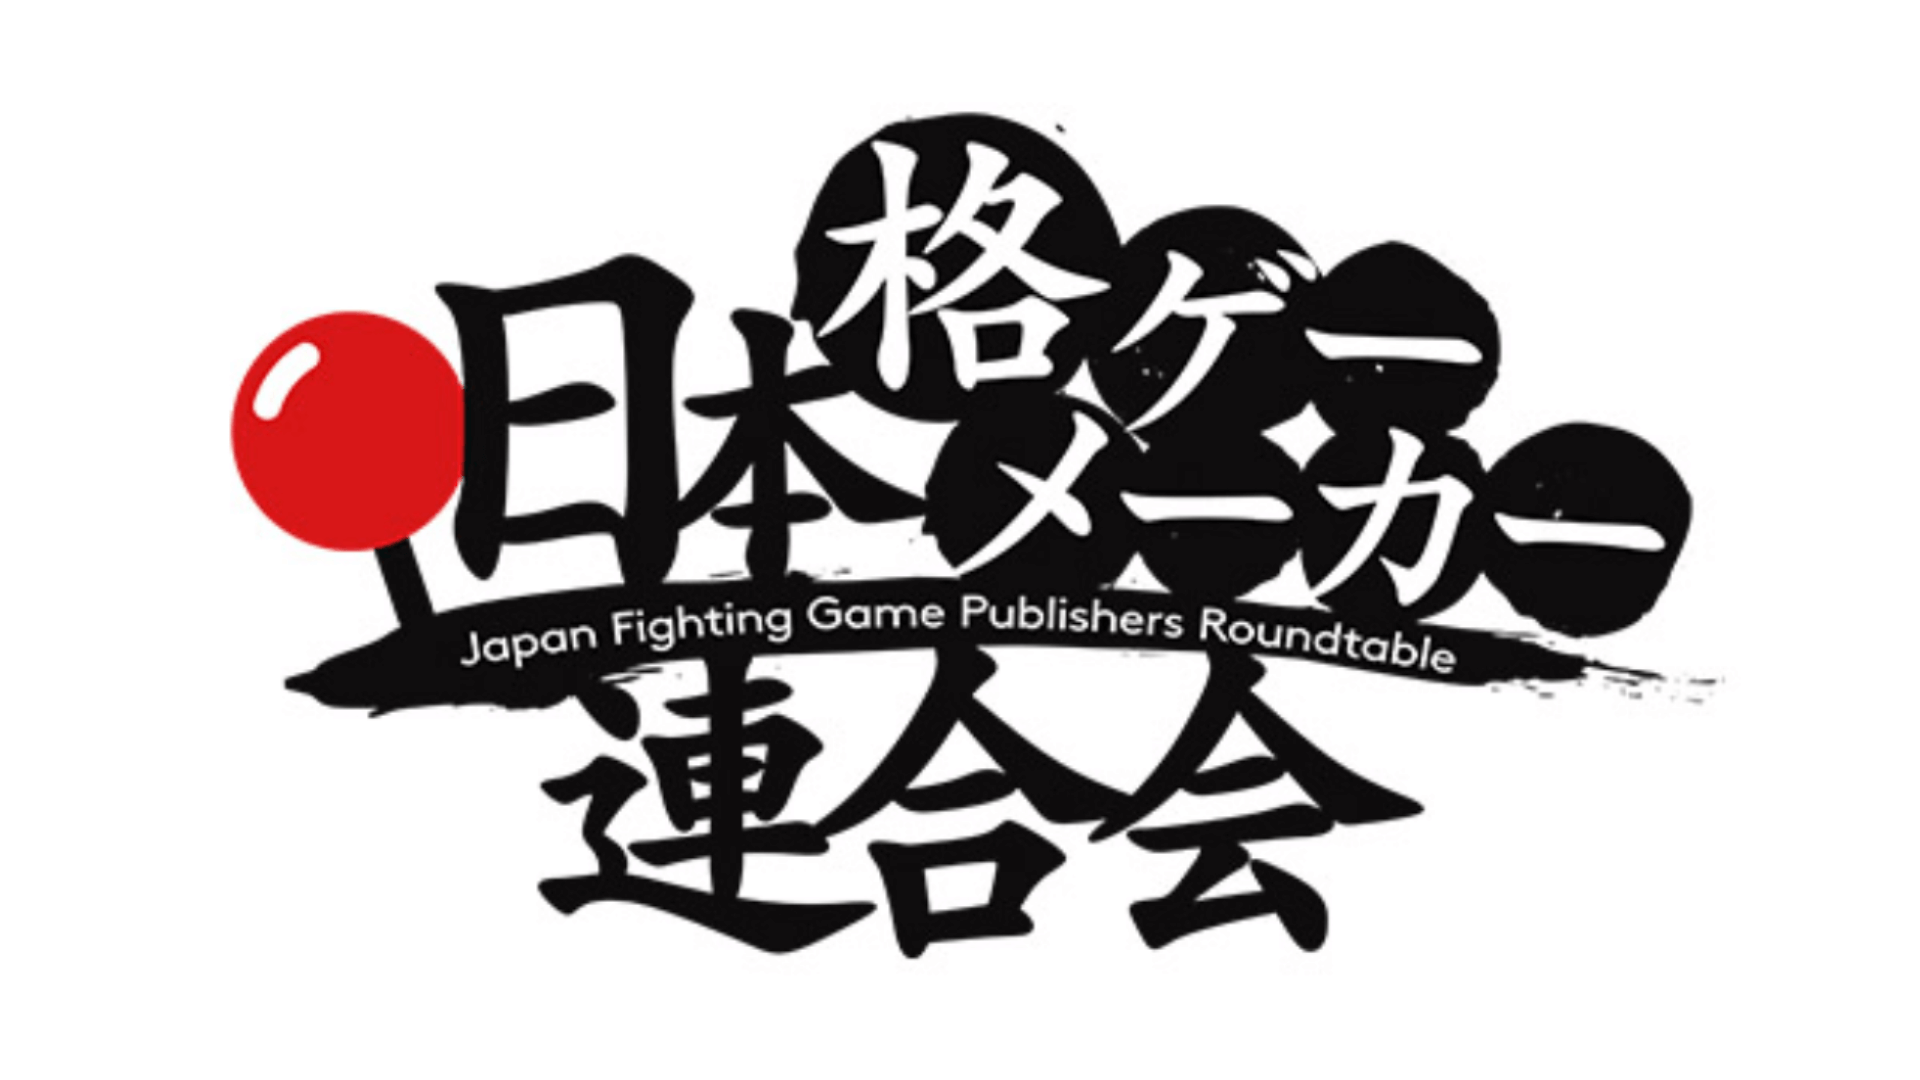 Japan Fighting Game Publishers Roundtable watch now!